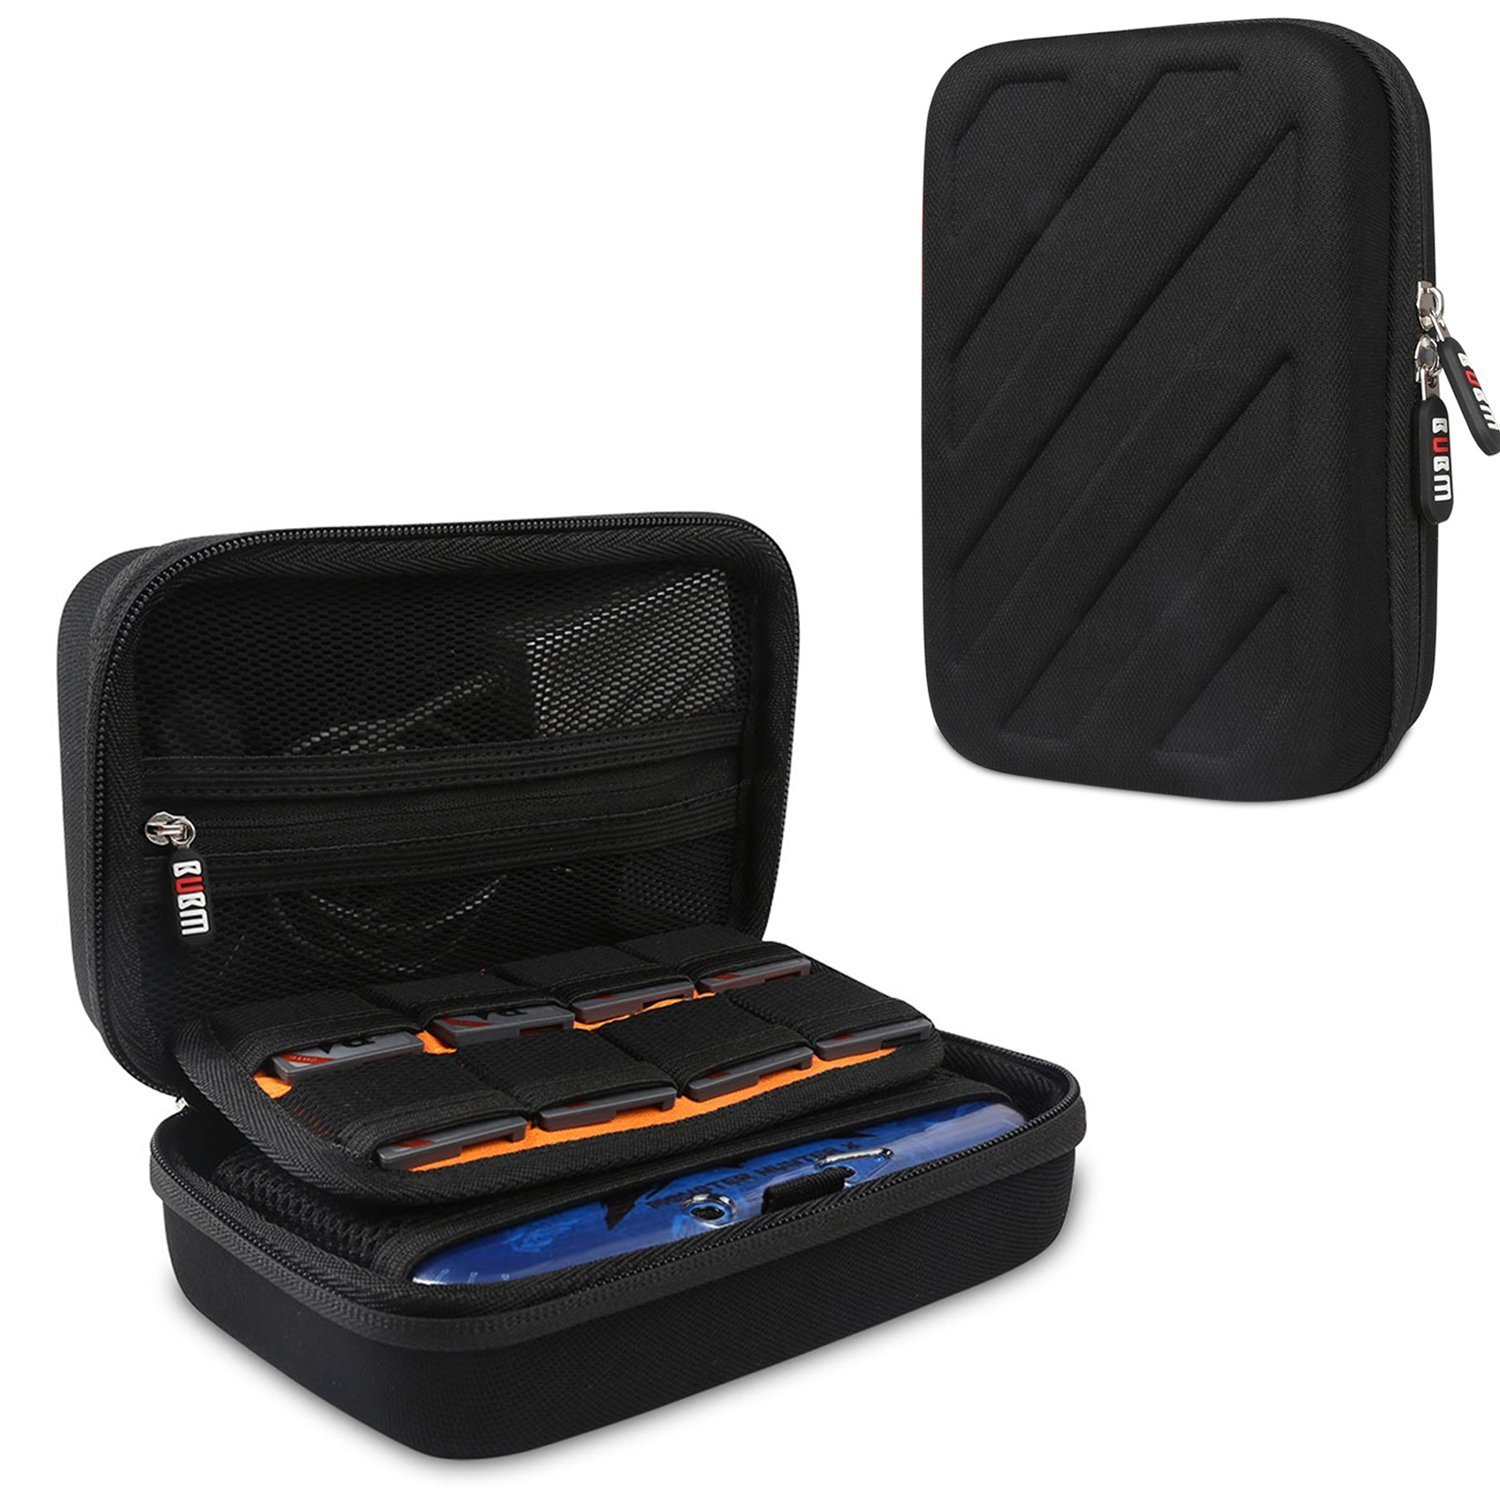 BUBM NEW 3DS XL Case Travel Organizer-Travel Carrying Game Case for Nintendo DS/3DS Games and Charger-Hard EVA Nintendo 3ds XL Case pouch for 3DS/3DS XL/3DS LL/NEW 3DS/NEW 3DS XL-Black